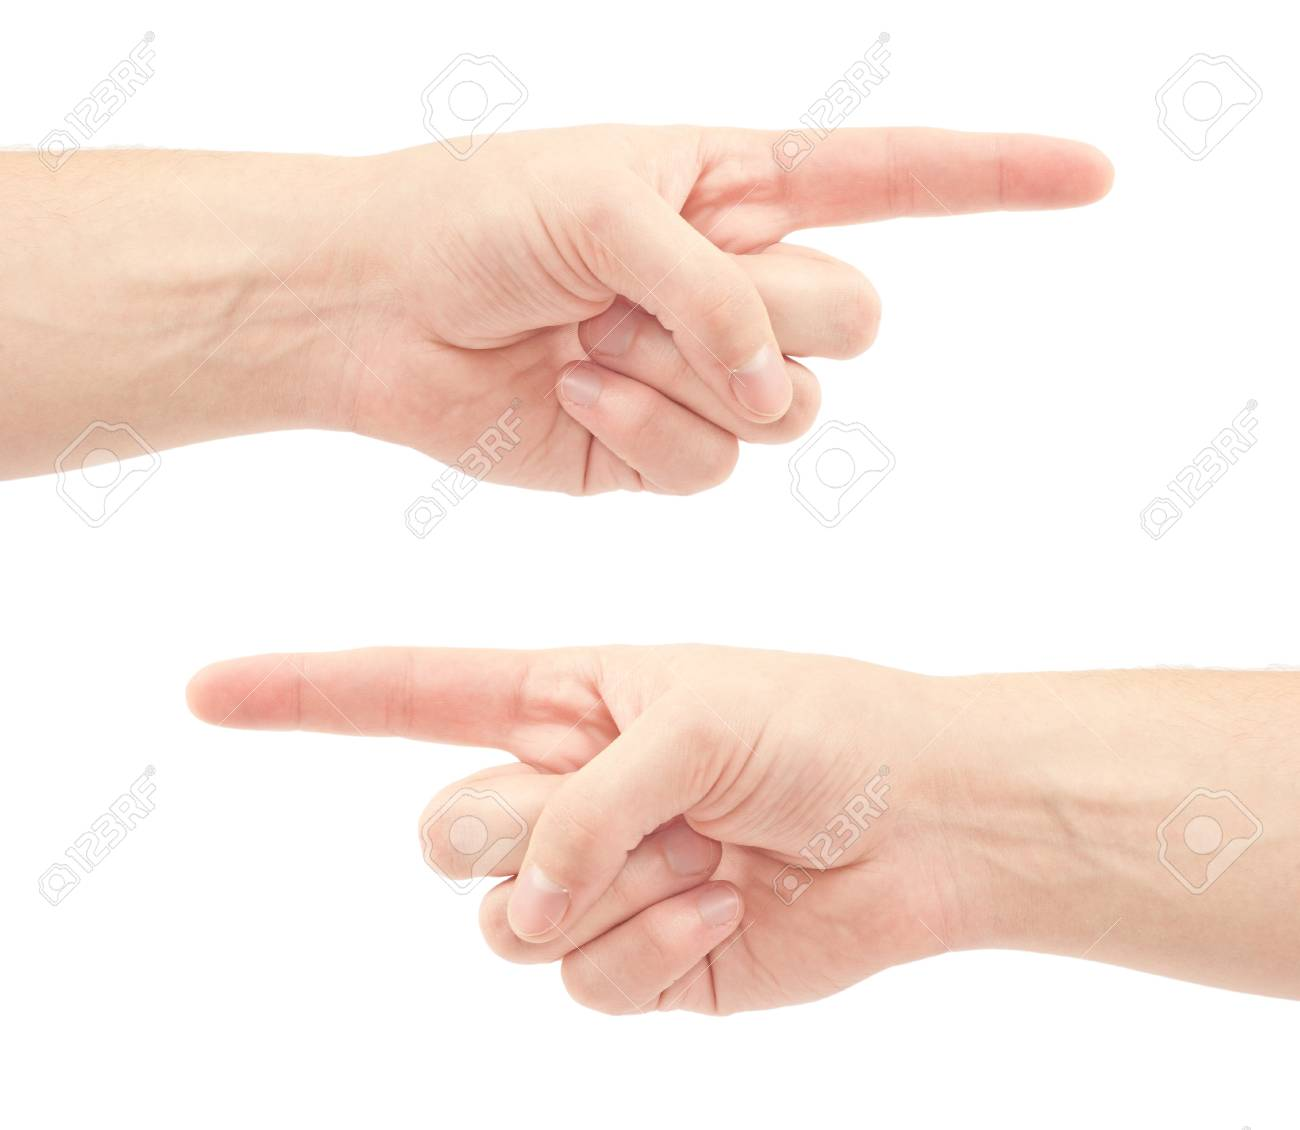 Pointing hand isolated on white background Stock Photo - 12614175